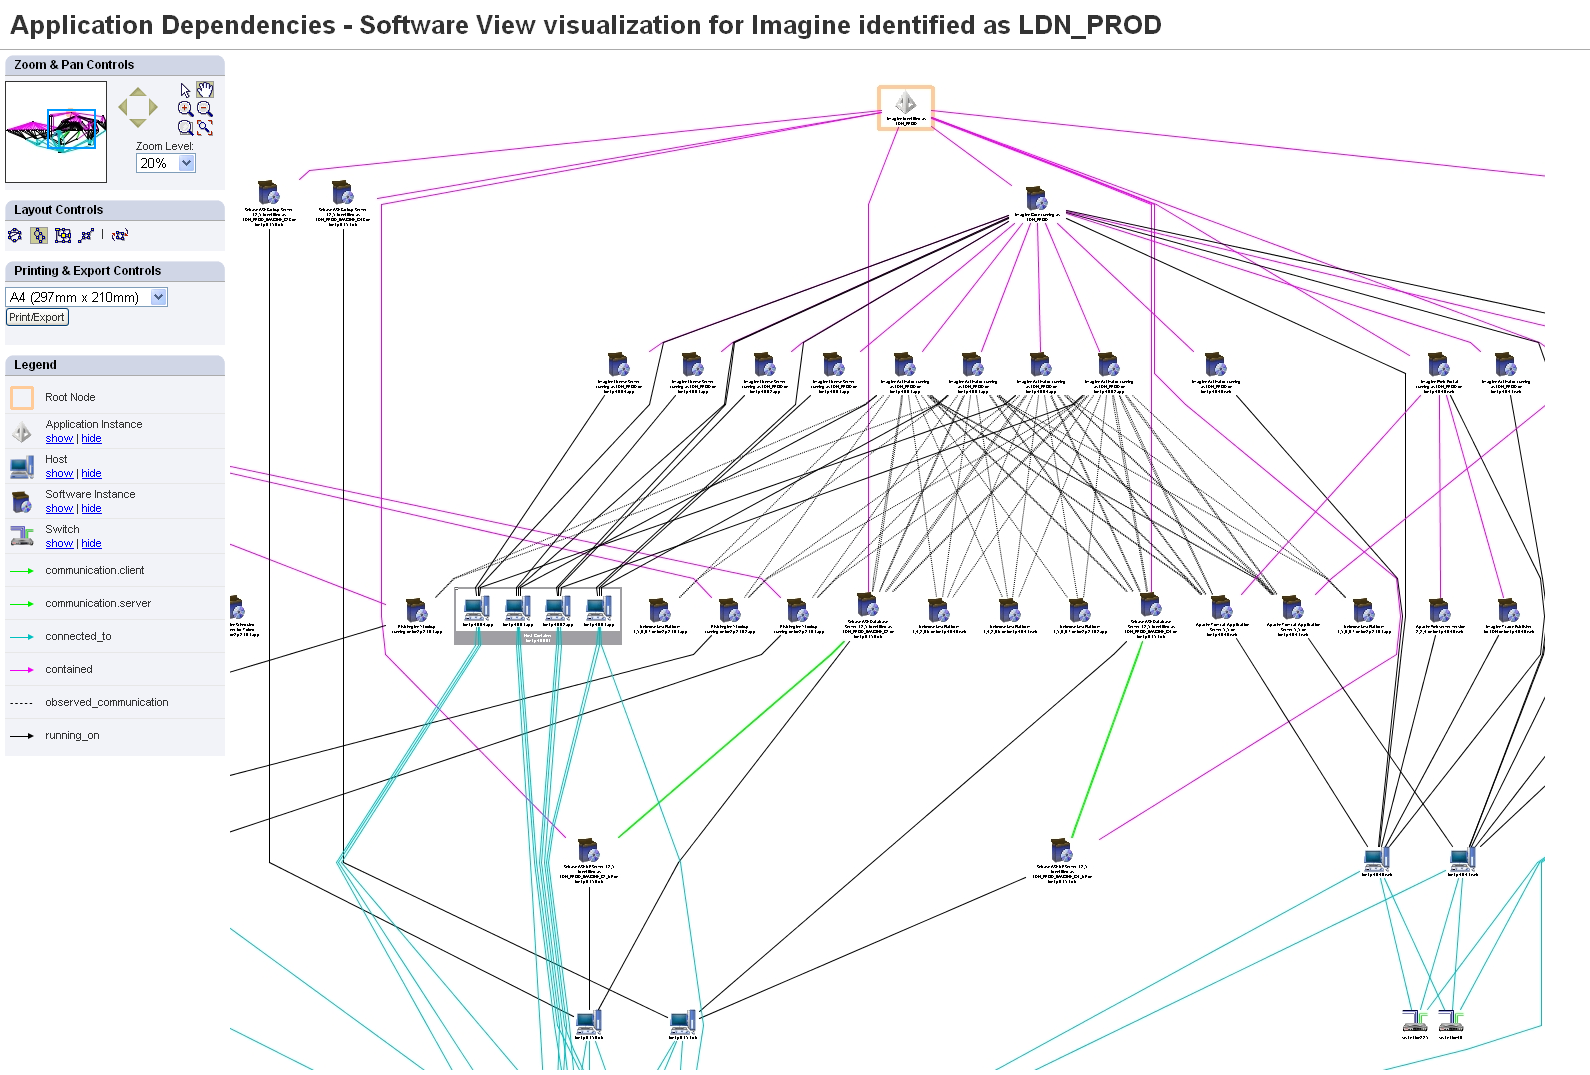 User Guide Pdf Documentation For Bmc Discovery 83 Howto Vlan Configuration On Hp Procurve 2810 Switch This Screen Illustrates An Example Of Application Dependencies Software View Visualization